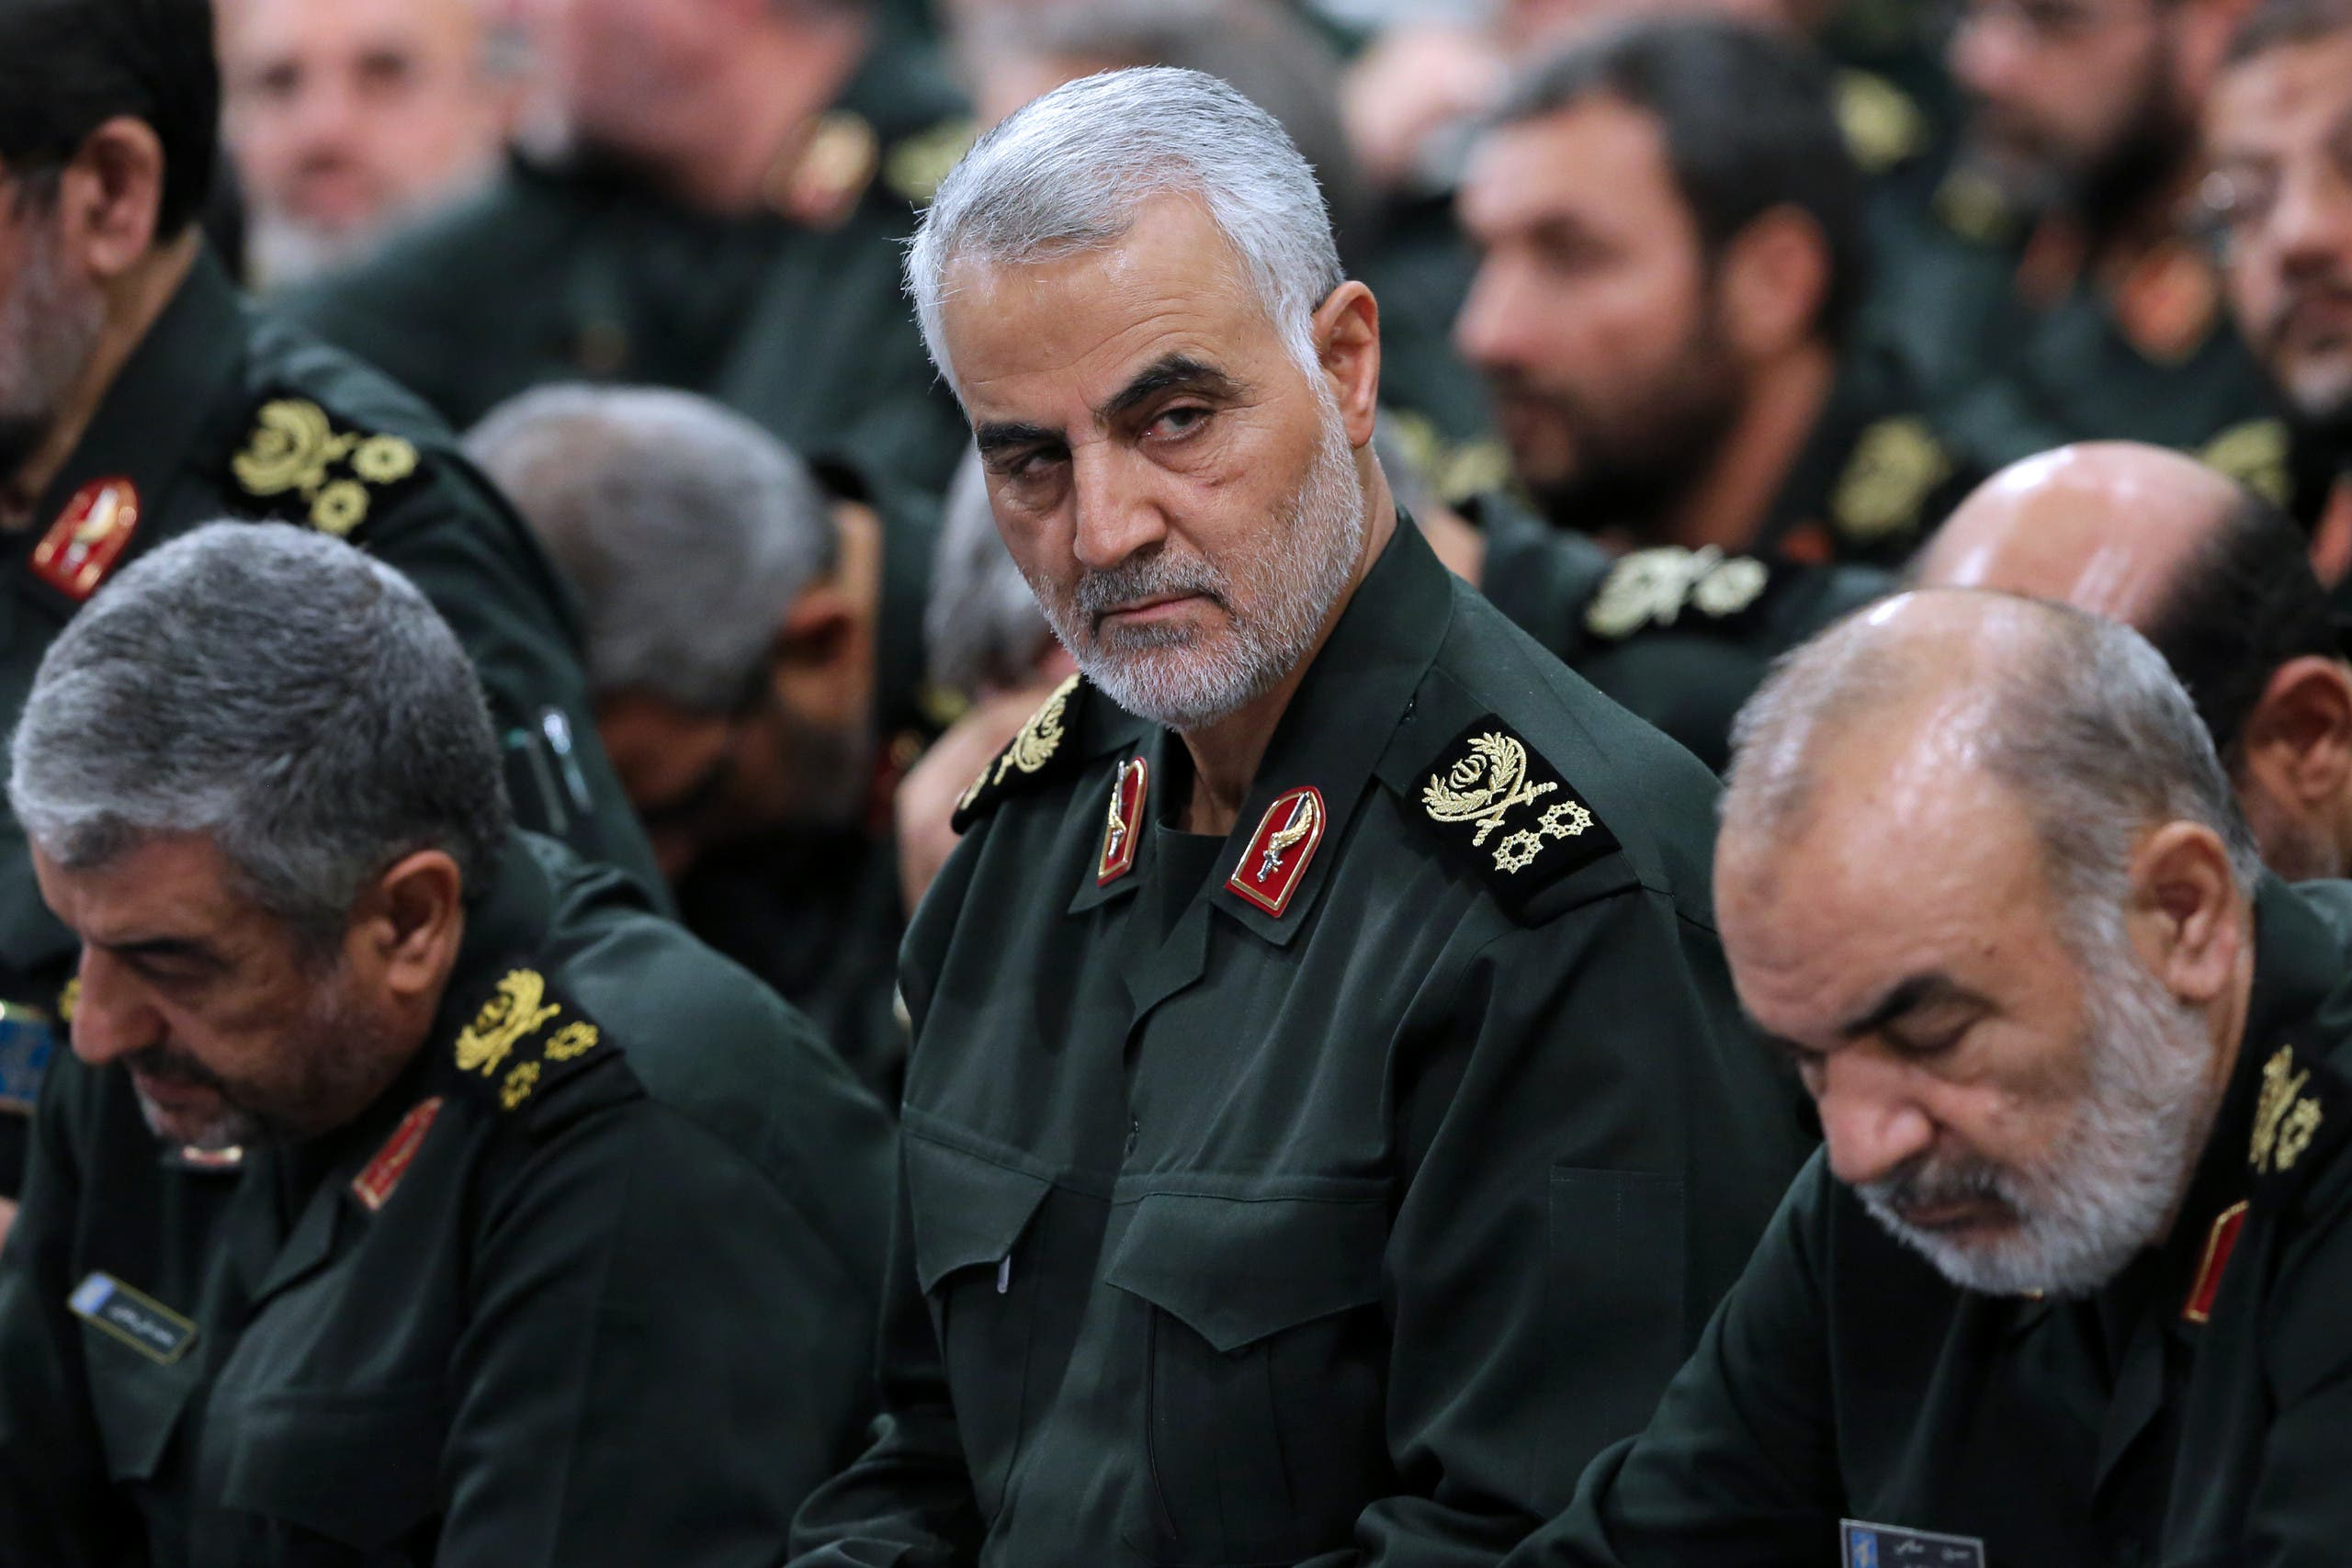 the Quds Force commander Major General, Qassem Suleimani (C), attending a meeting of Revolutionary Guard's commanders in Tehran. AFP